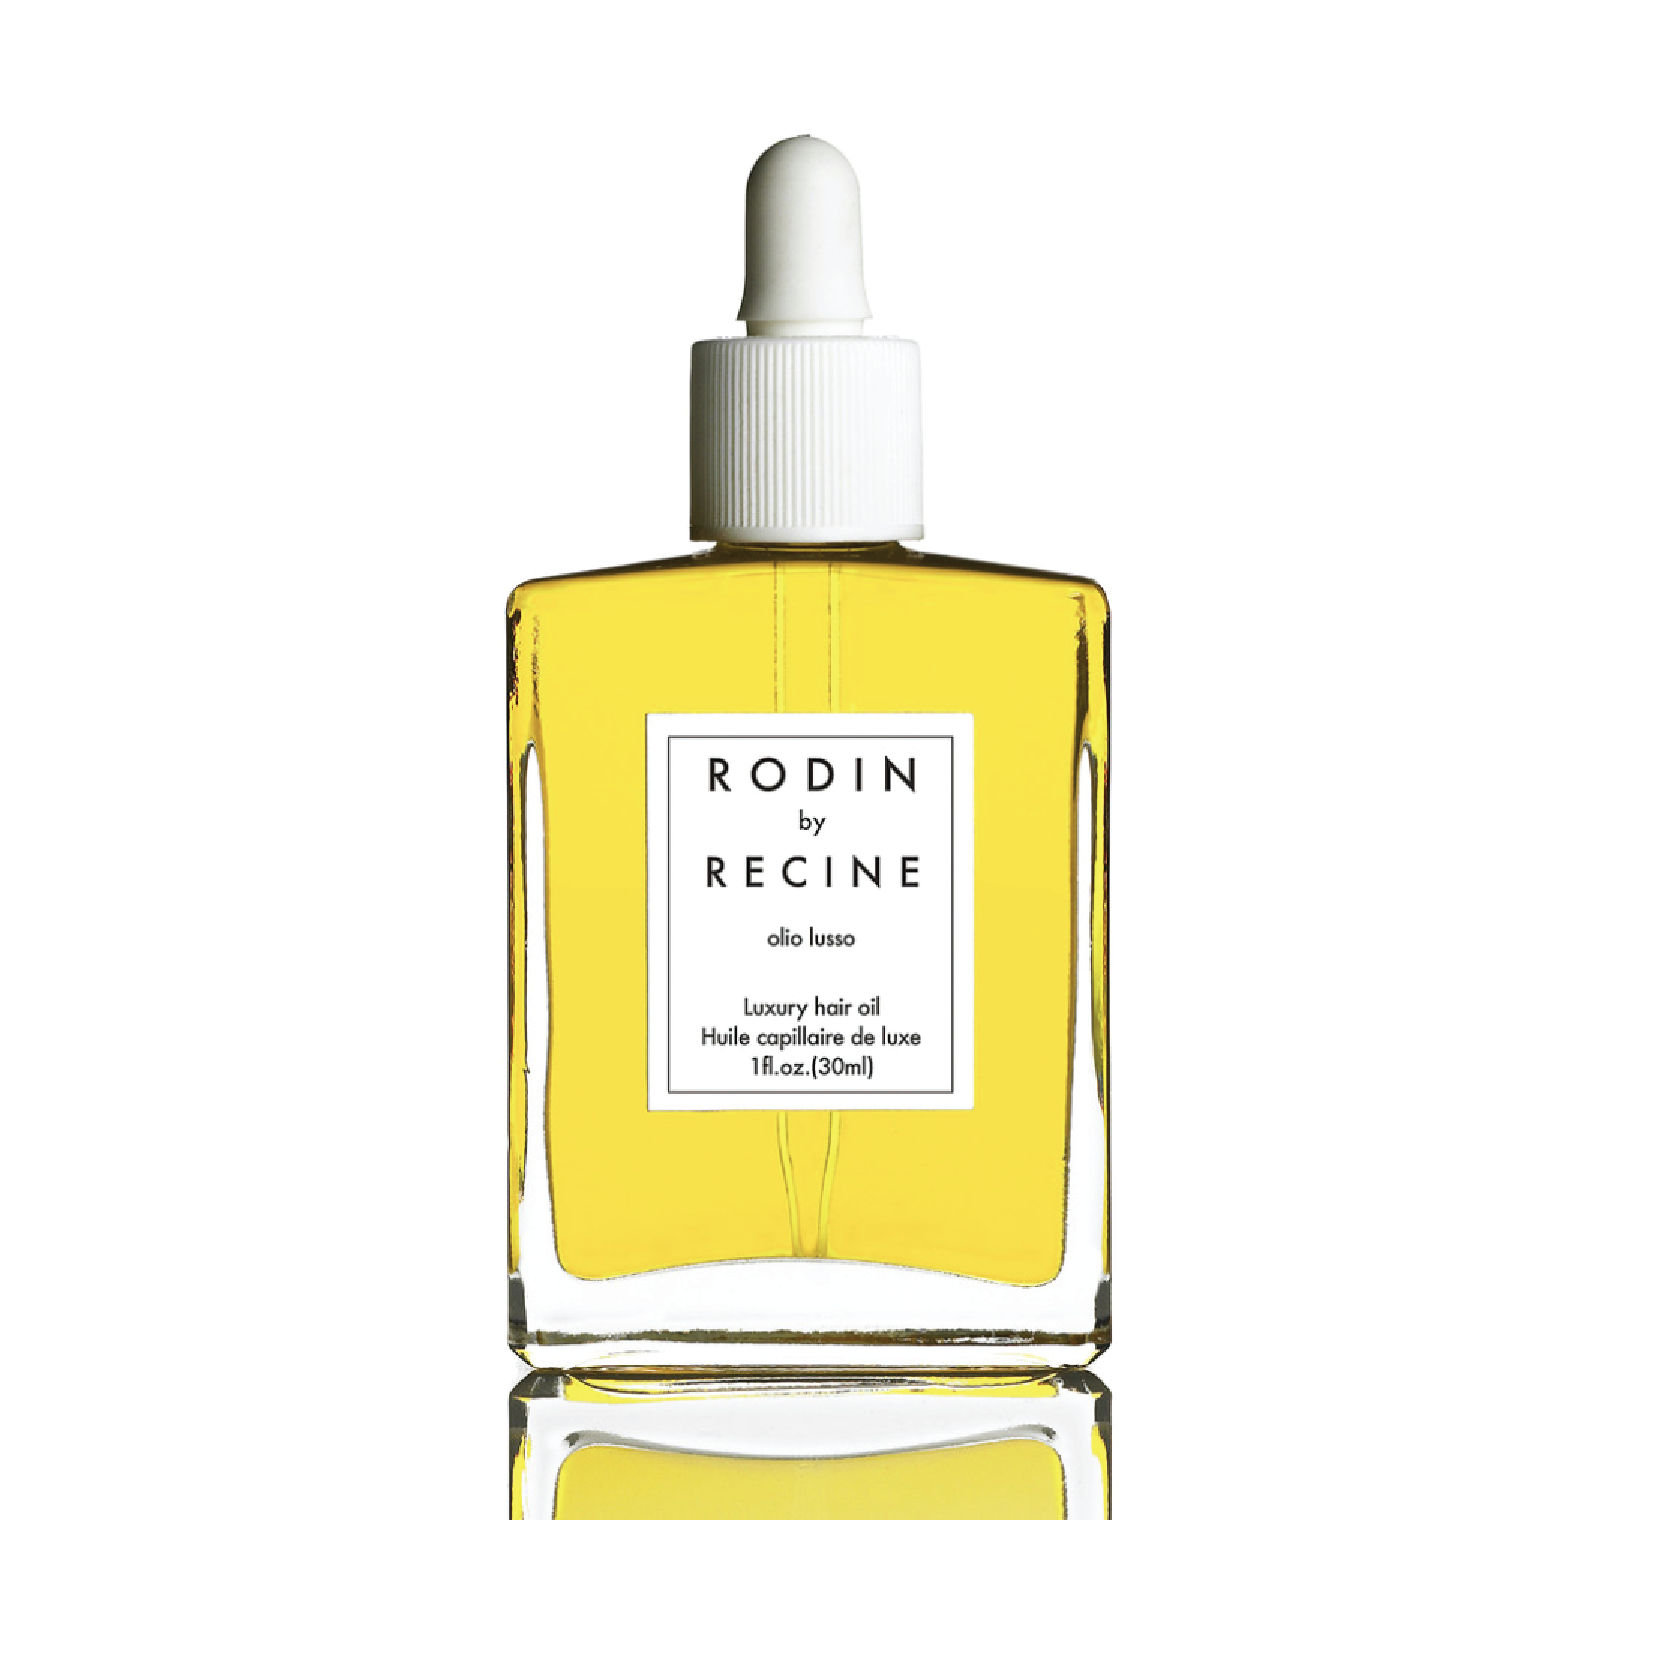 Rodin Luxury Hair Oil - $70 at GoopRodin makes the most beautiful products, and this hair oil is no exception. Naturally scented, this oil helps to rebuild damaged hair.